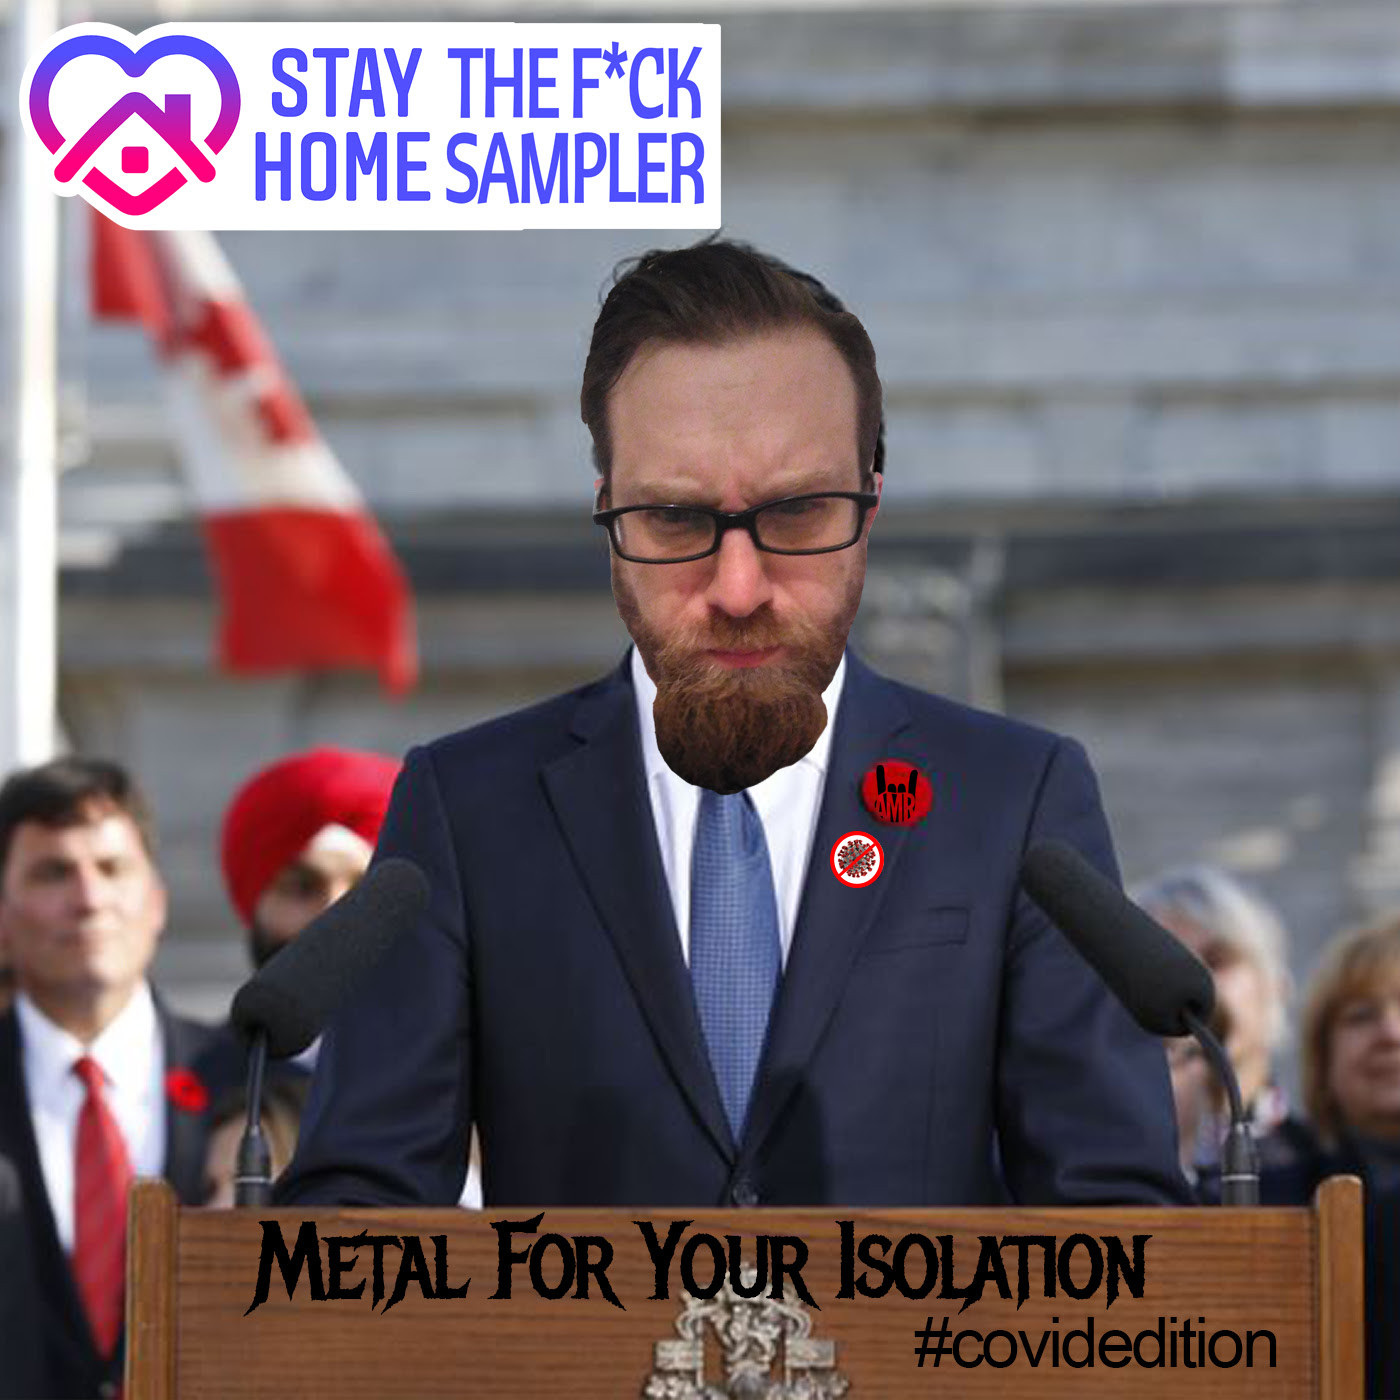 Free Metal Compilation - Stay The Fvck Home #CovidEdition - Metal For Your Isolation